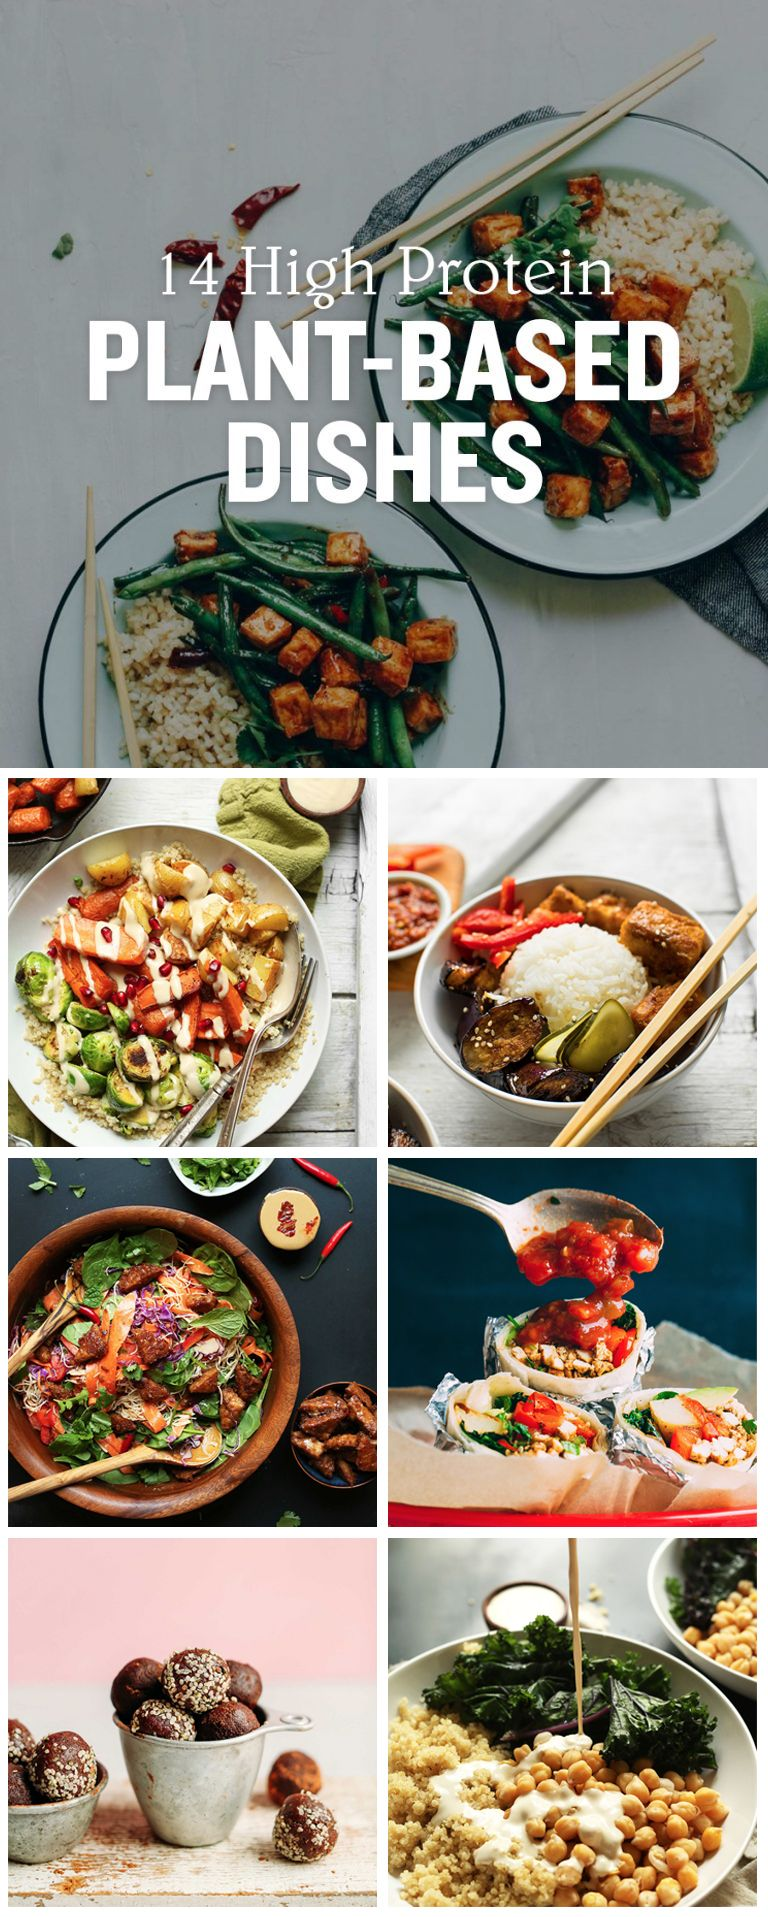 14 High Protein Plant Based Dishes In 2019 My Kitchen